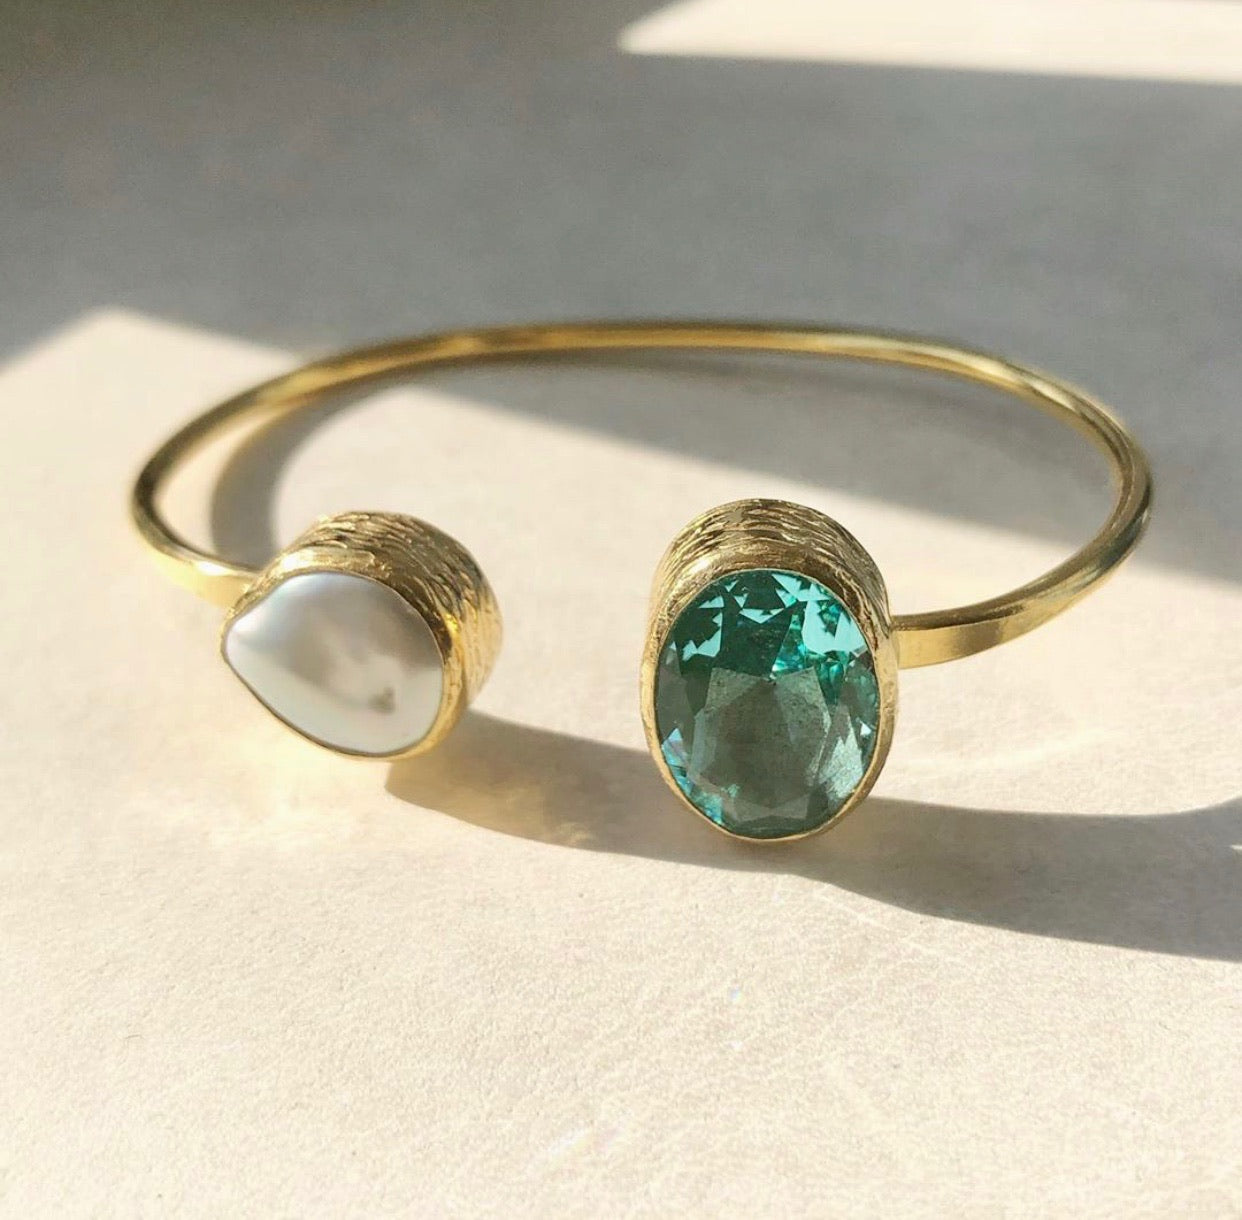 Mother of Pearl & Aquamarine 24kt Gold Plated Handmade Open Bangle